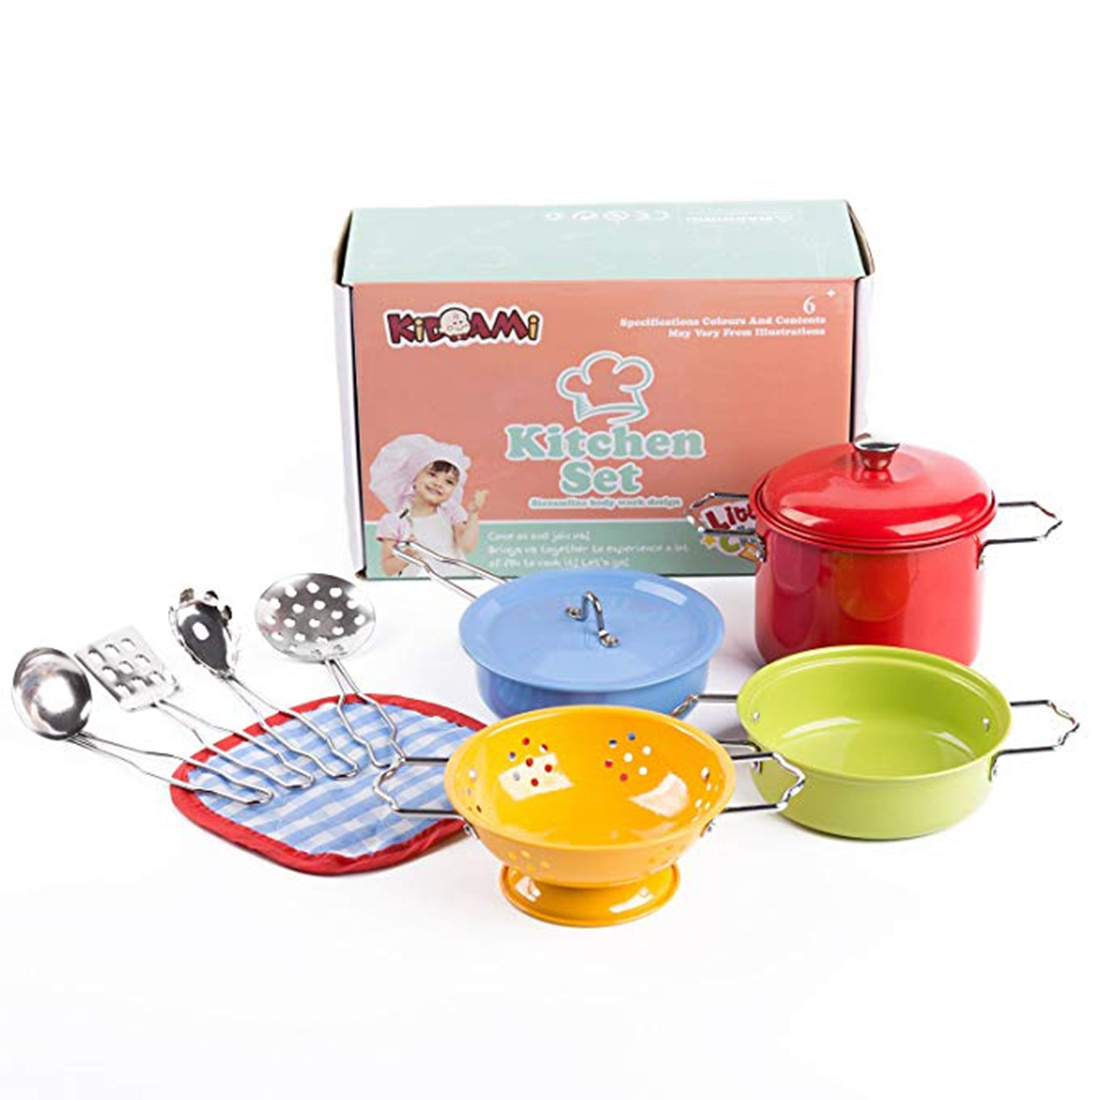 11pcs kids pretend play house kitchen toys set stainless steel cooking pots pretend cook play toy simulation kitchen cooking toy 11Pcs Colorful Kitchen Toy Set Utensils Cooking Pots Pans Food Dishes mini simulation Kids Cookware pretend play Toys